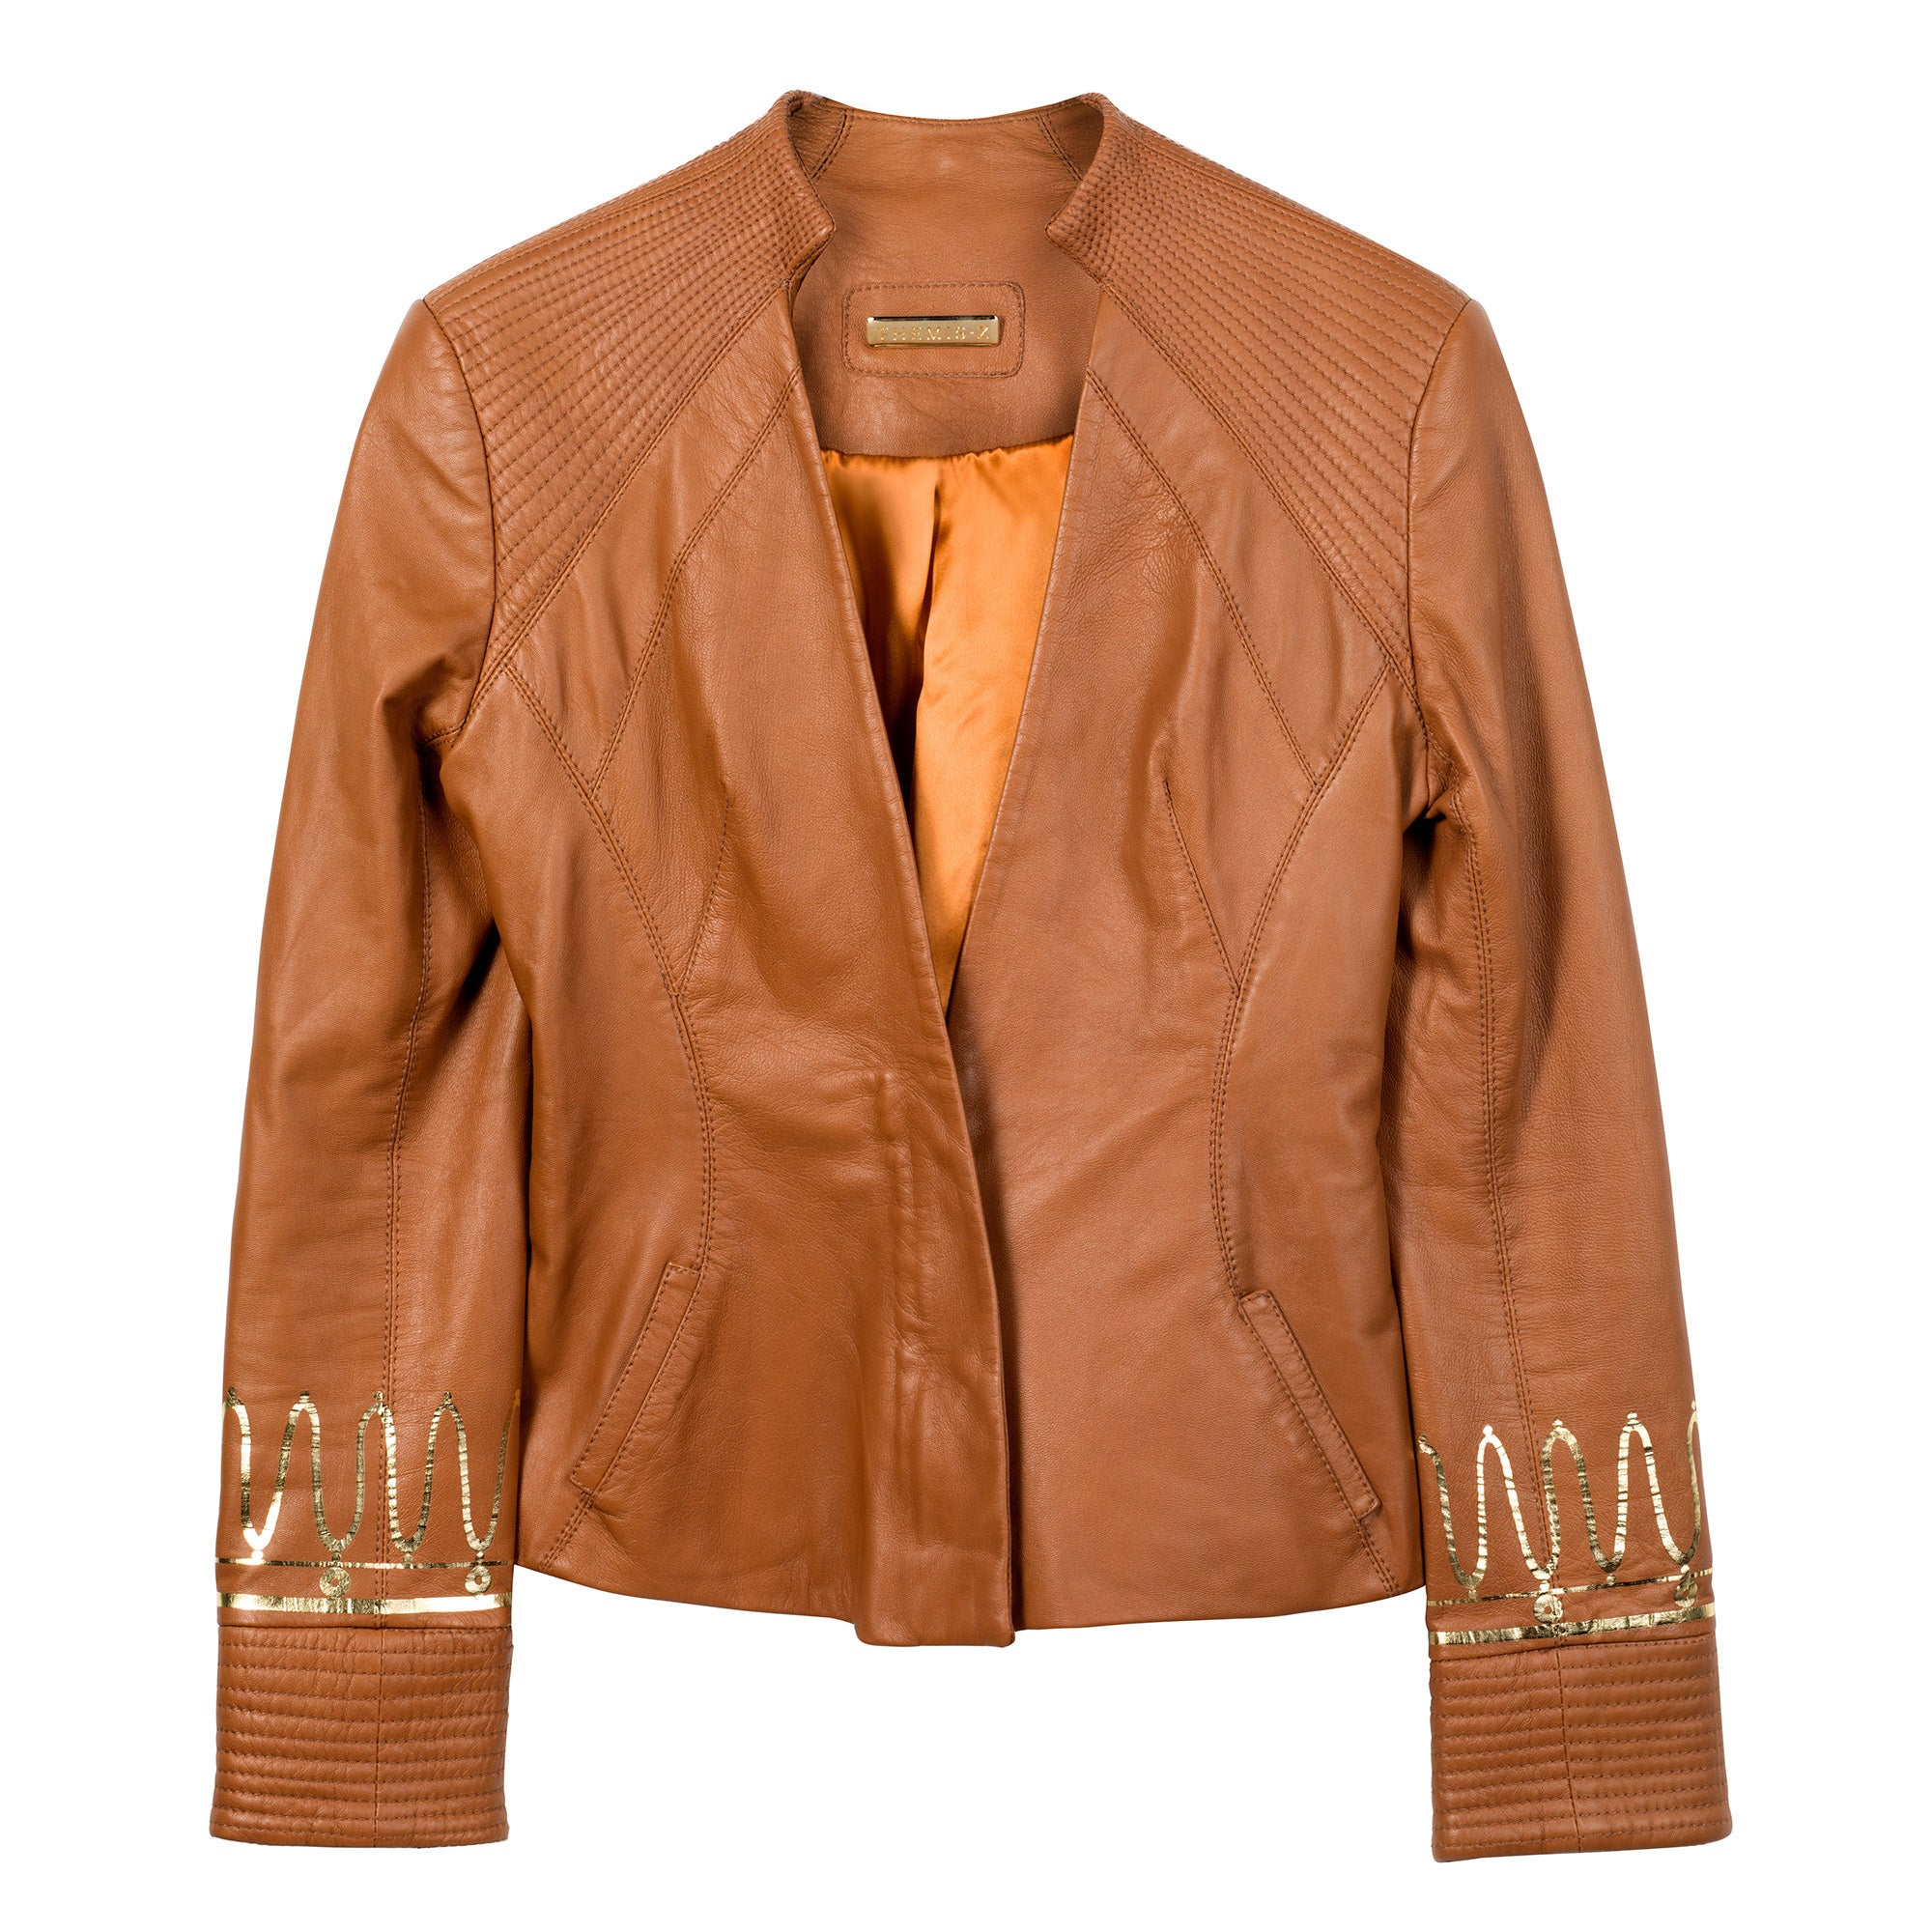 The Kyma Leather Jacket